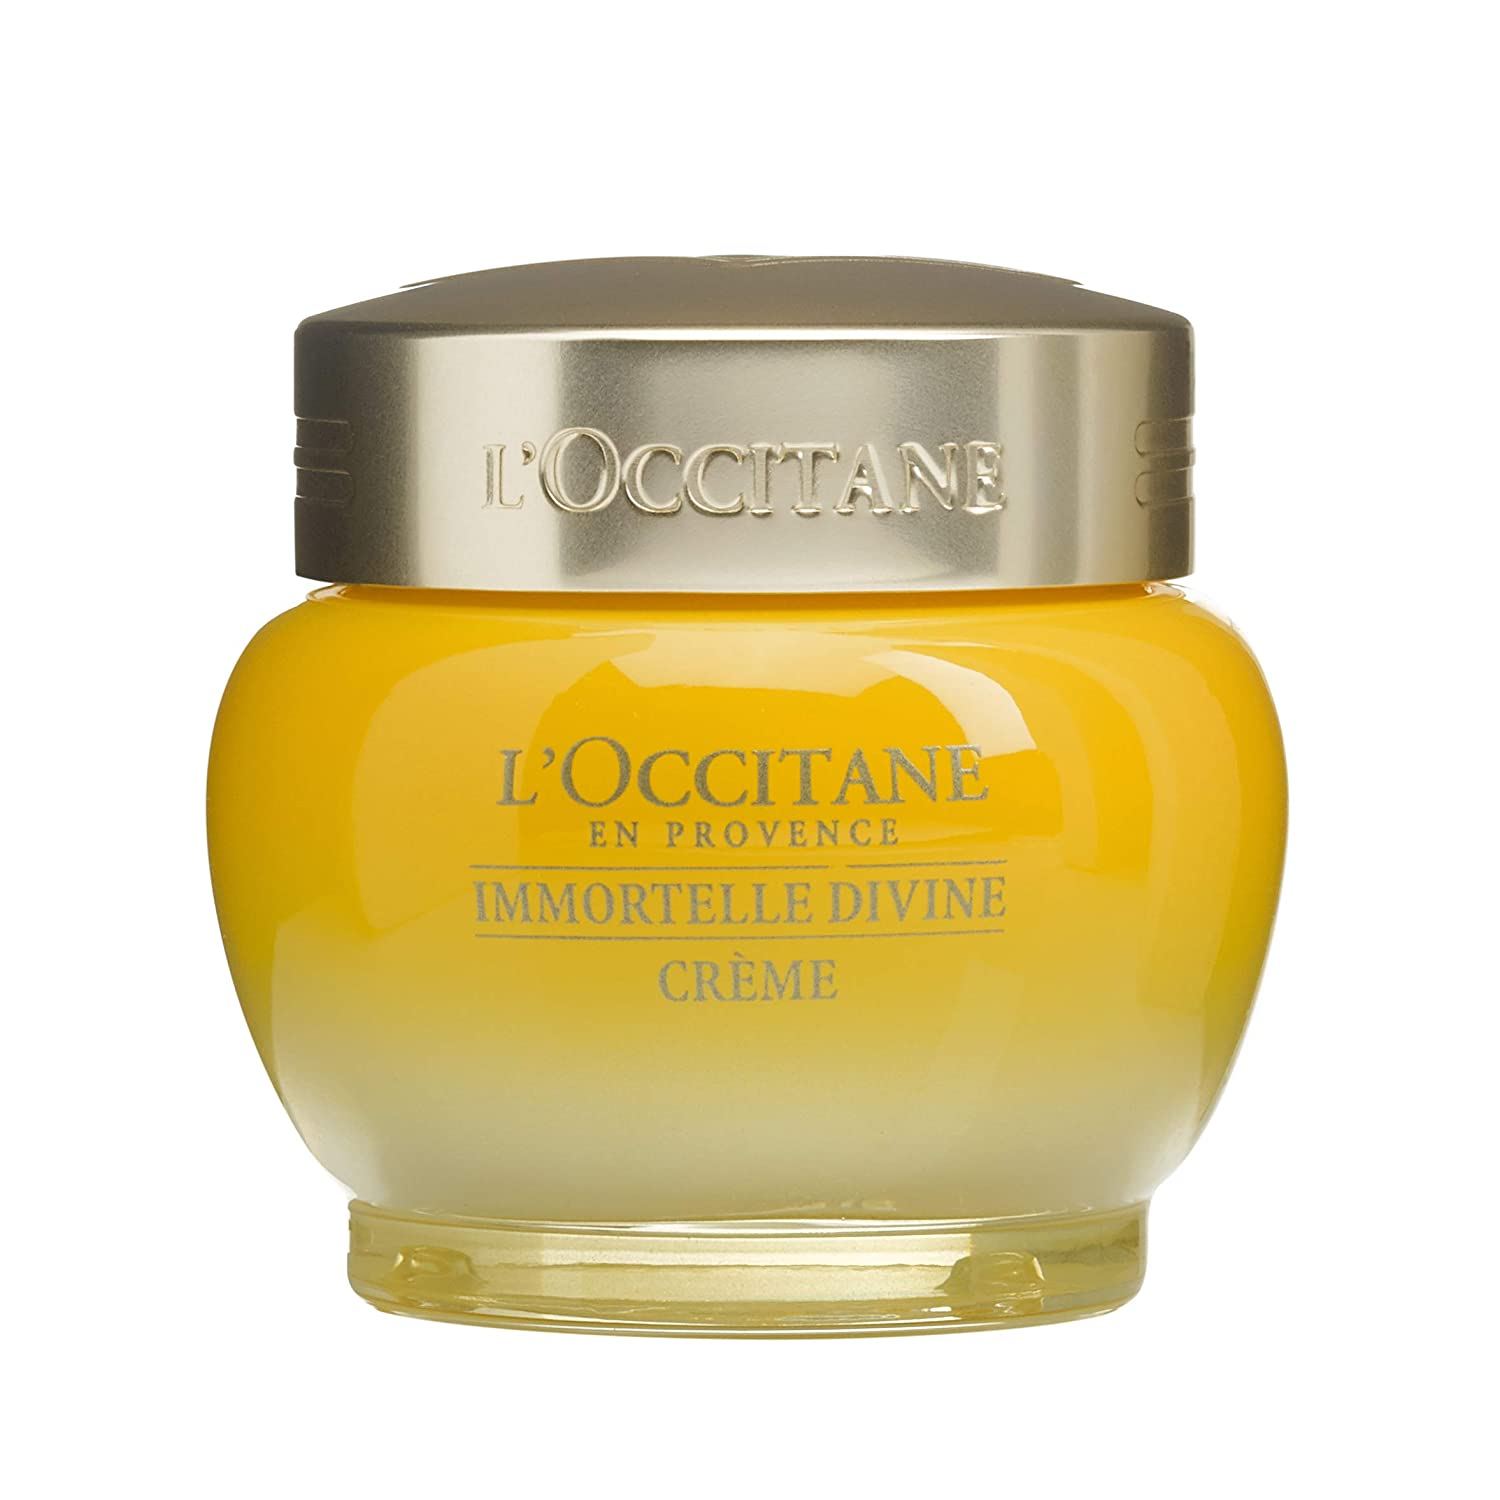 L'Occitane Anti-Aging Divine Cream for a Youthful and Radiant Glow